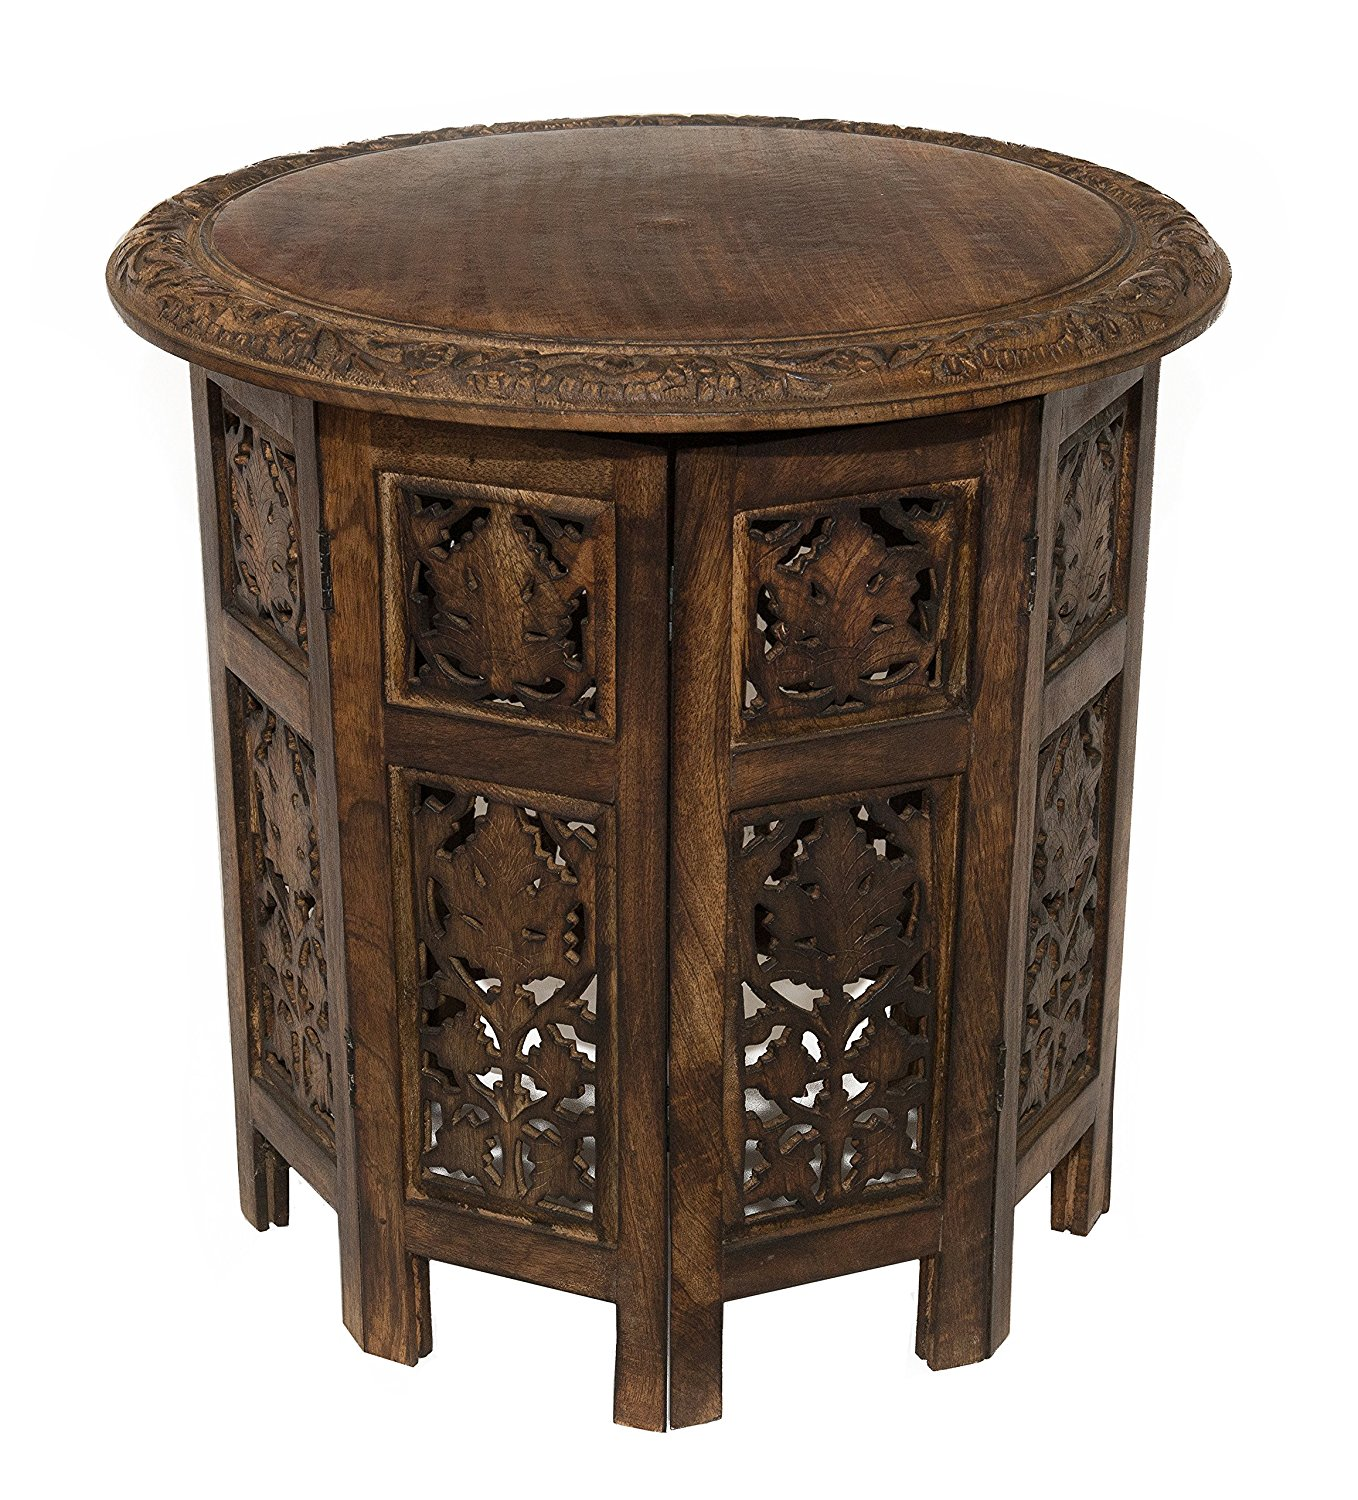 lovely small accent table for ornate mirrored glass with drawer wooden round art deco furniture side coffee tables lucite console ashley bedding lawn and garden target fur pillow